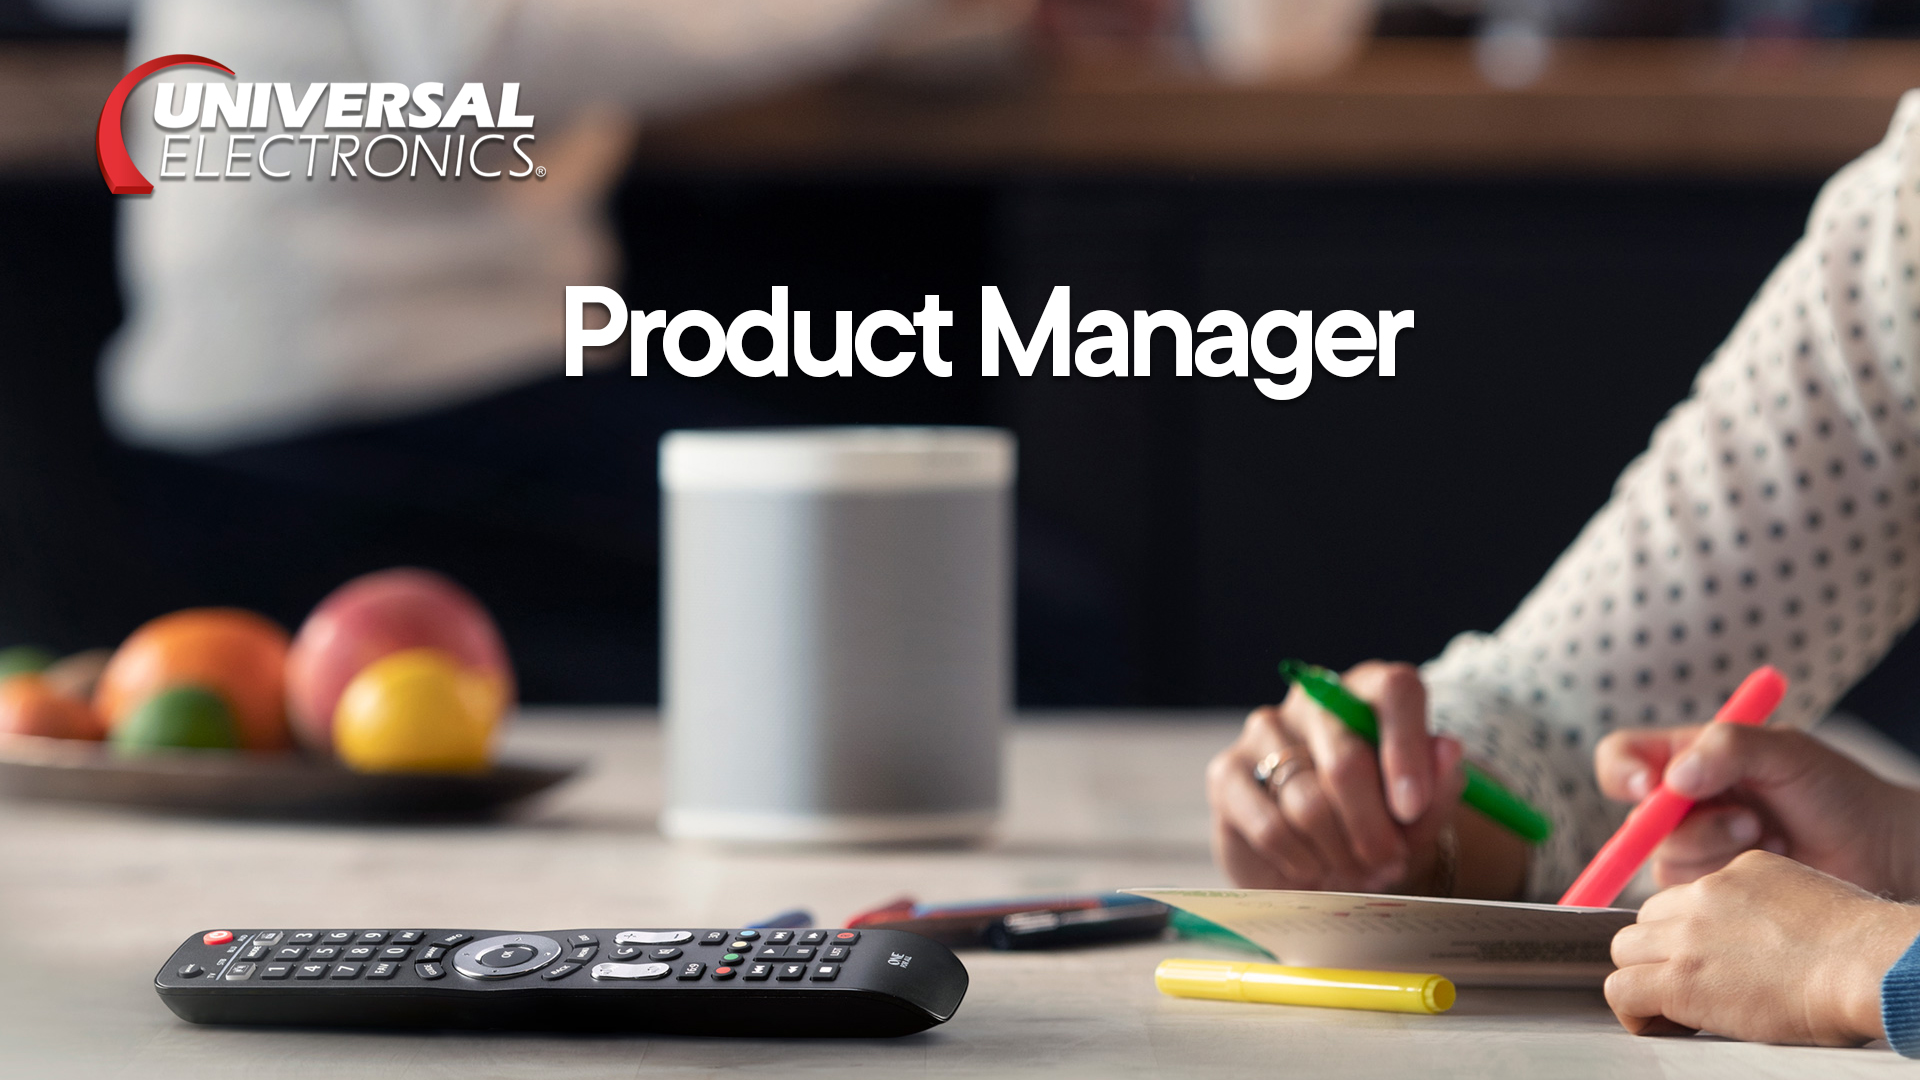 Product Manager 2020